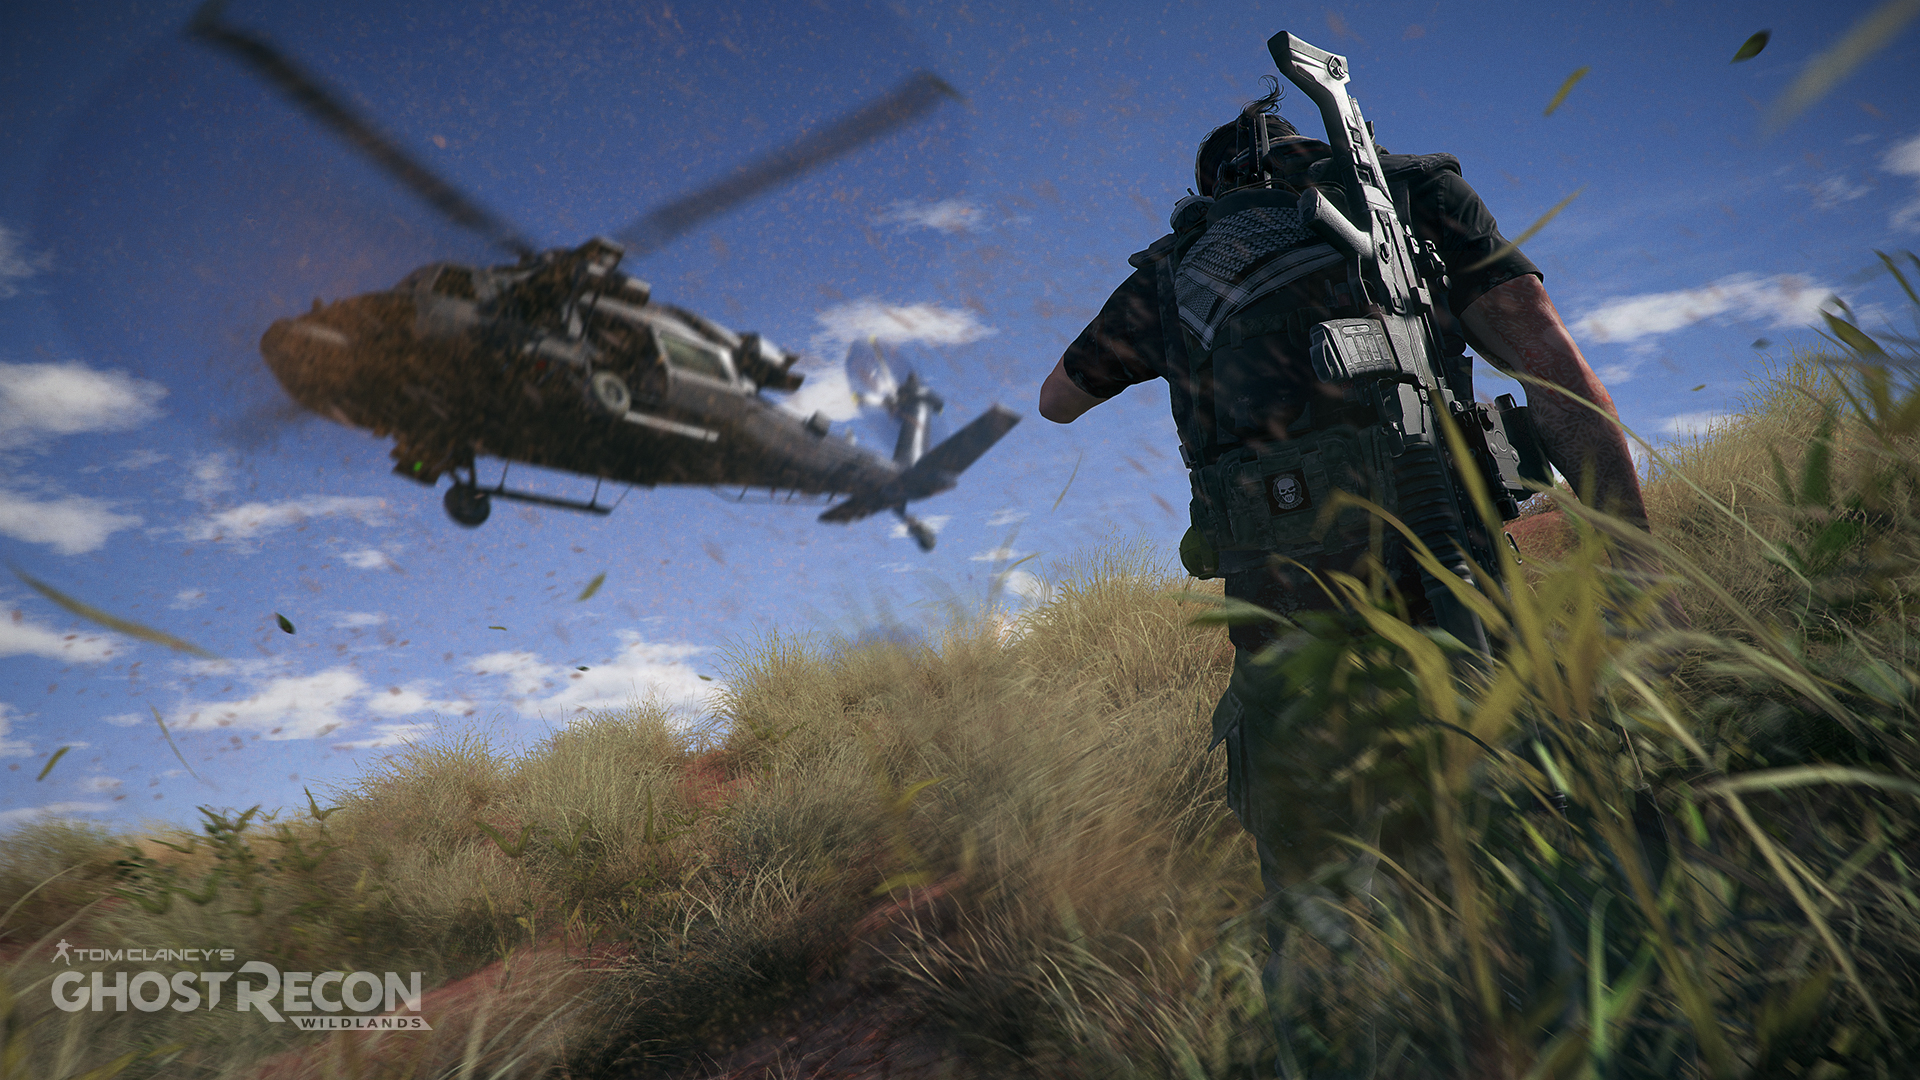 grw screen e3 3 208986 New Ghost Recon Wildlands Trailer Drops With Tons Of Info